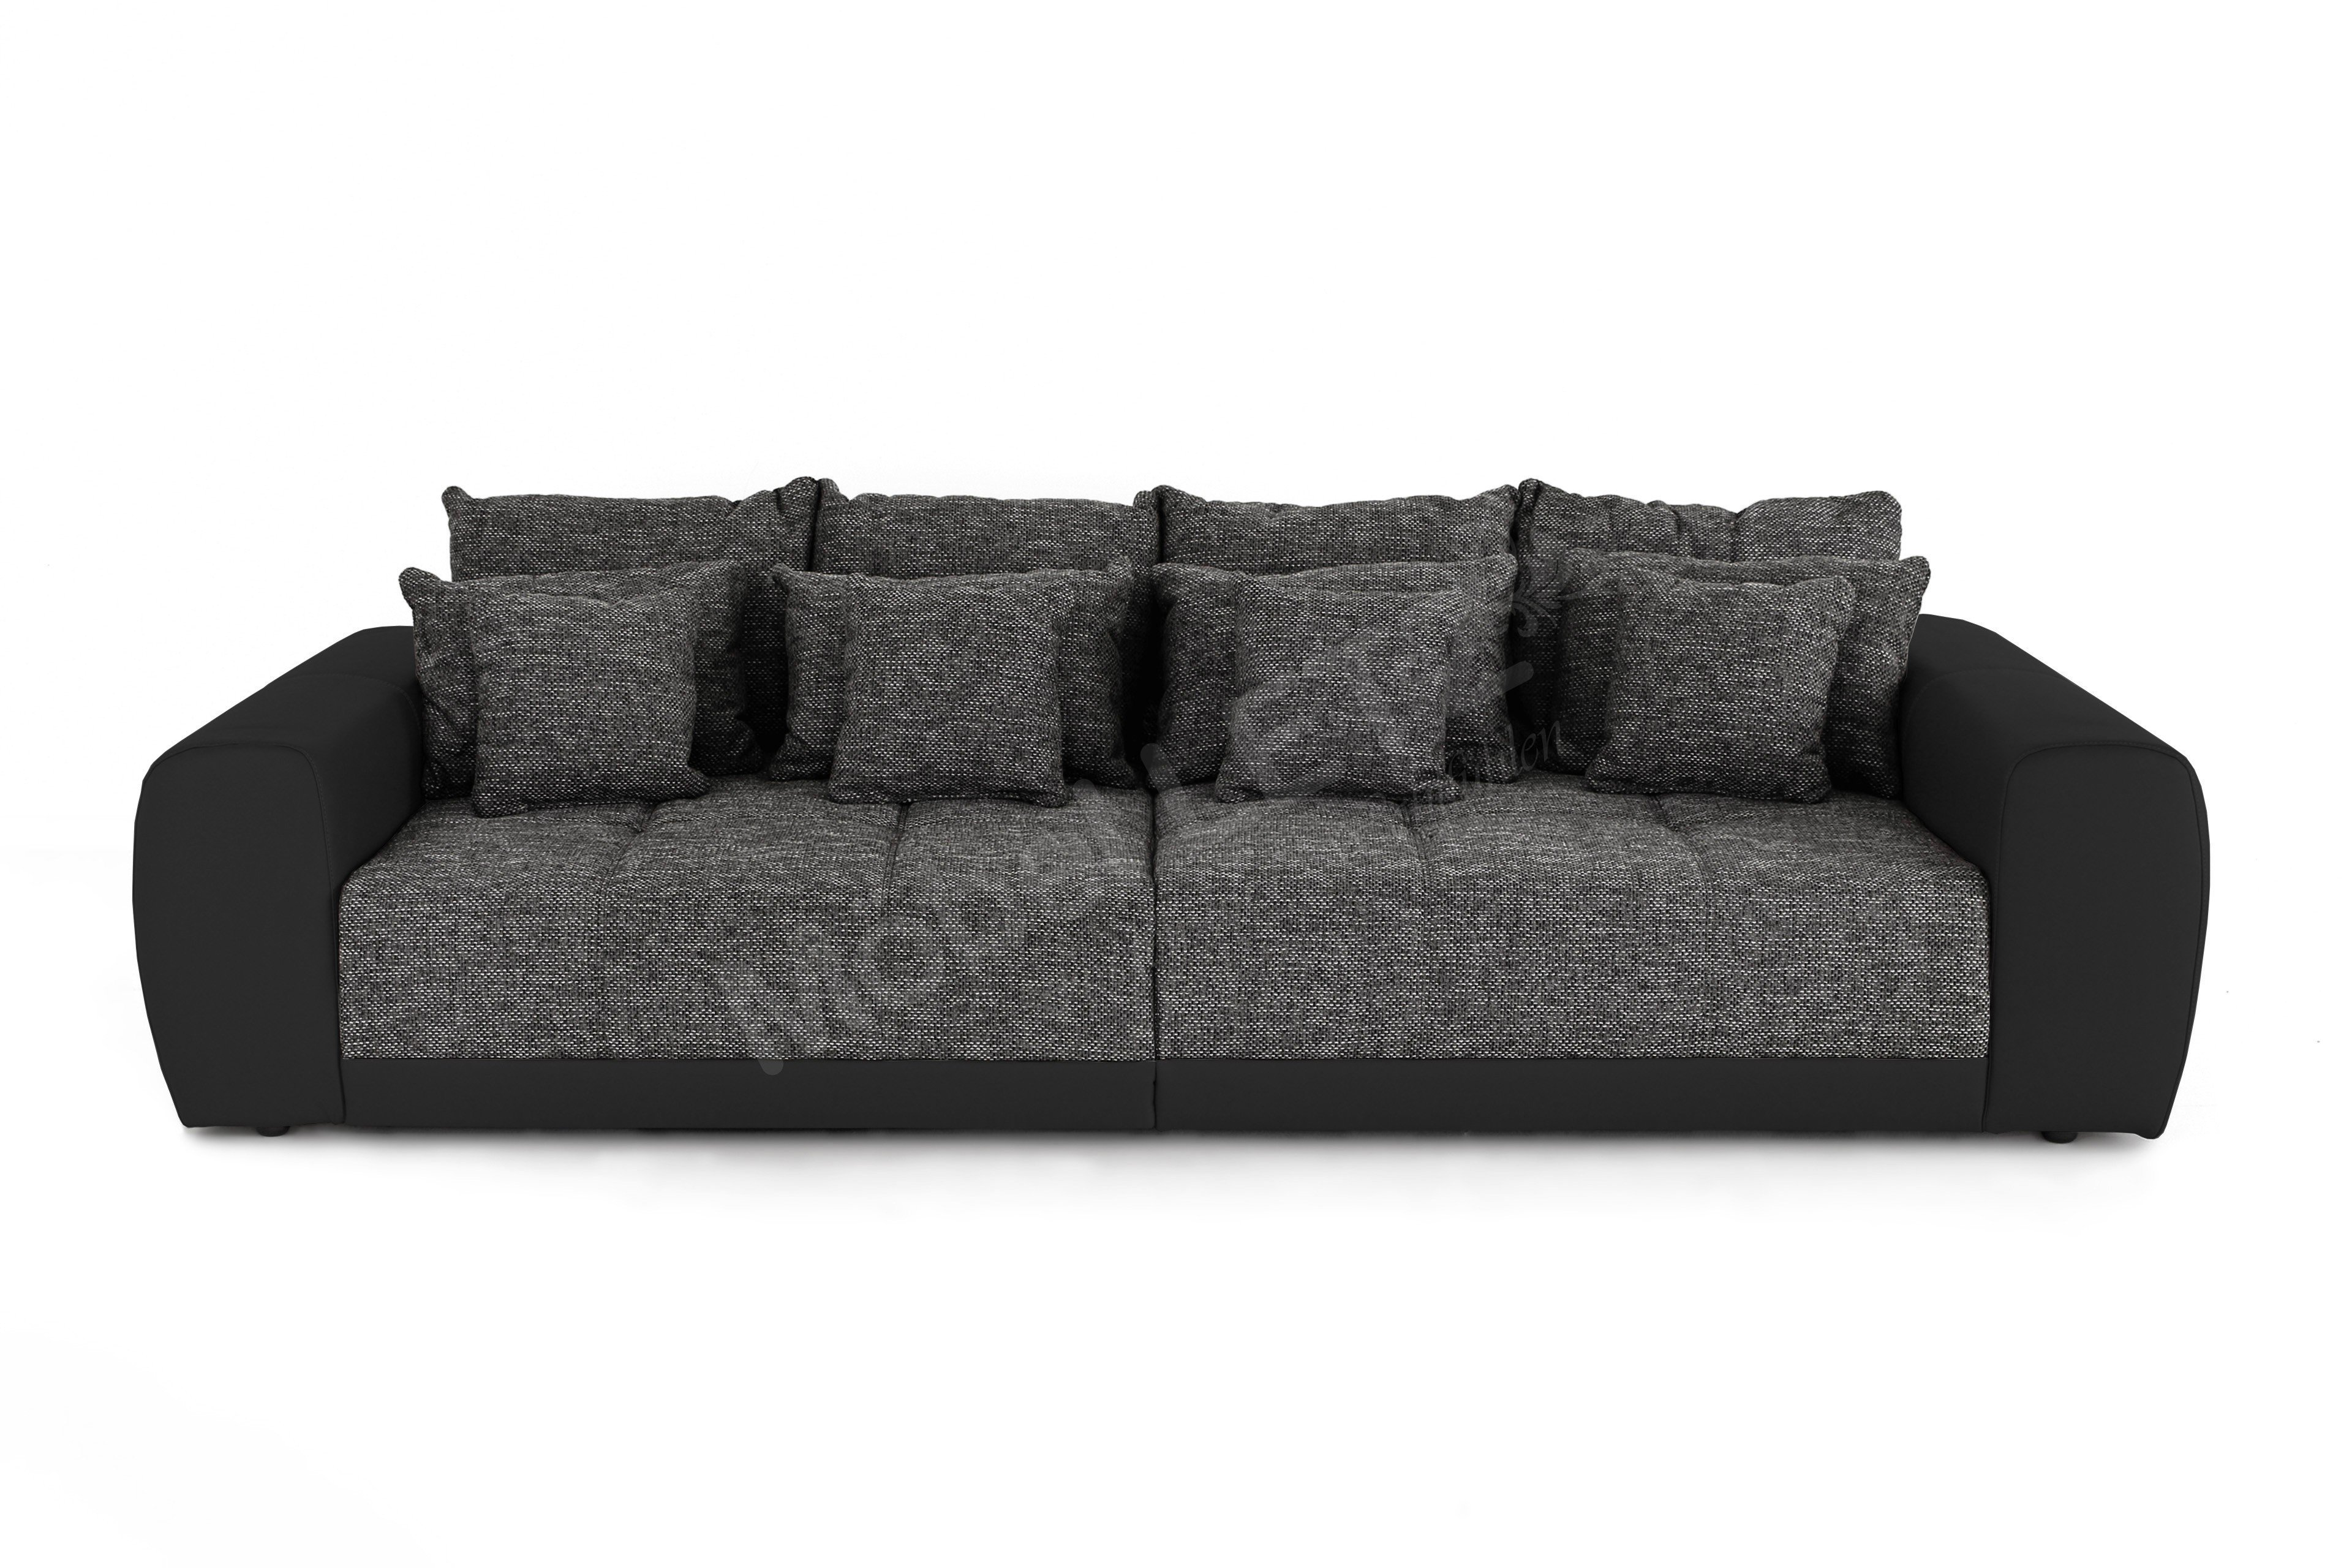 jockenh fer big sofa samy in grau schwarz m bel letz ihr online shop. Black Bedroom Furniture Sets. Home Design Ideas